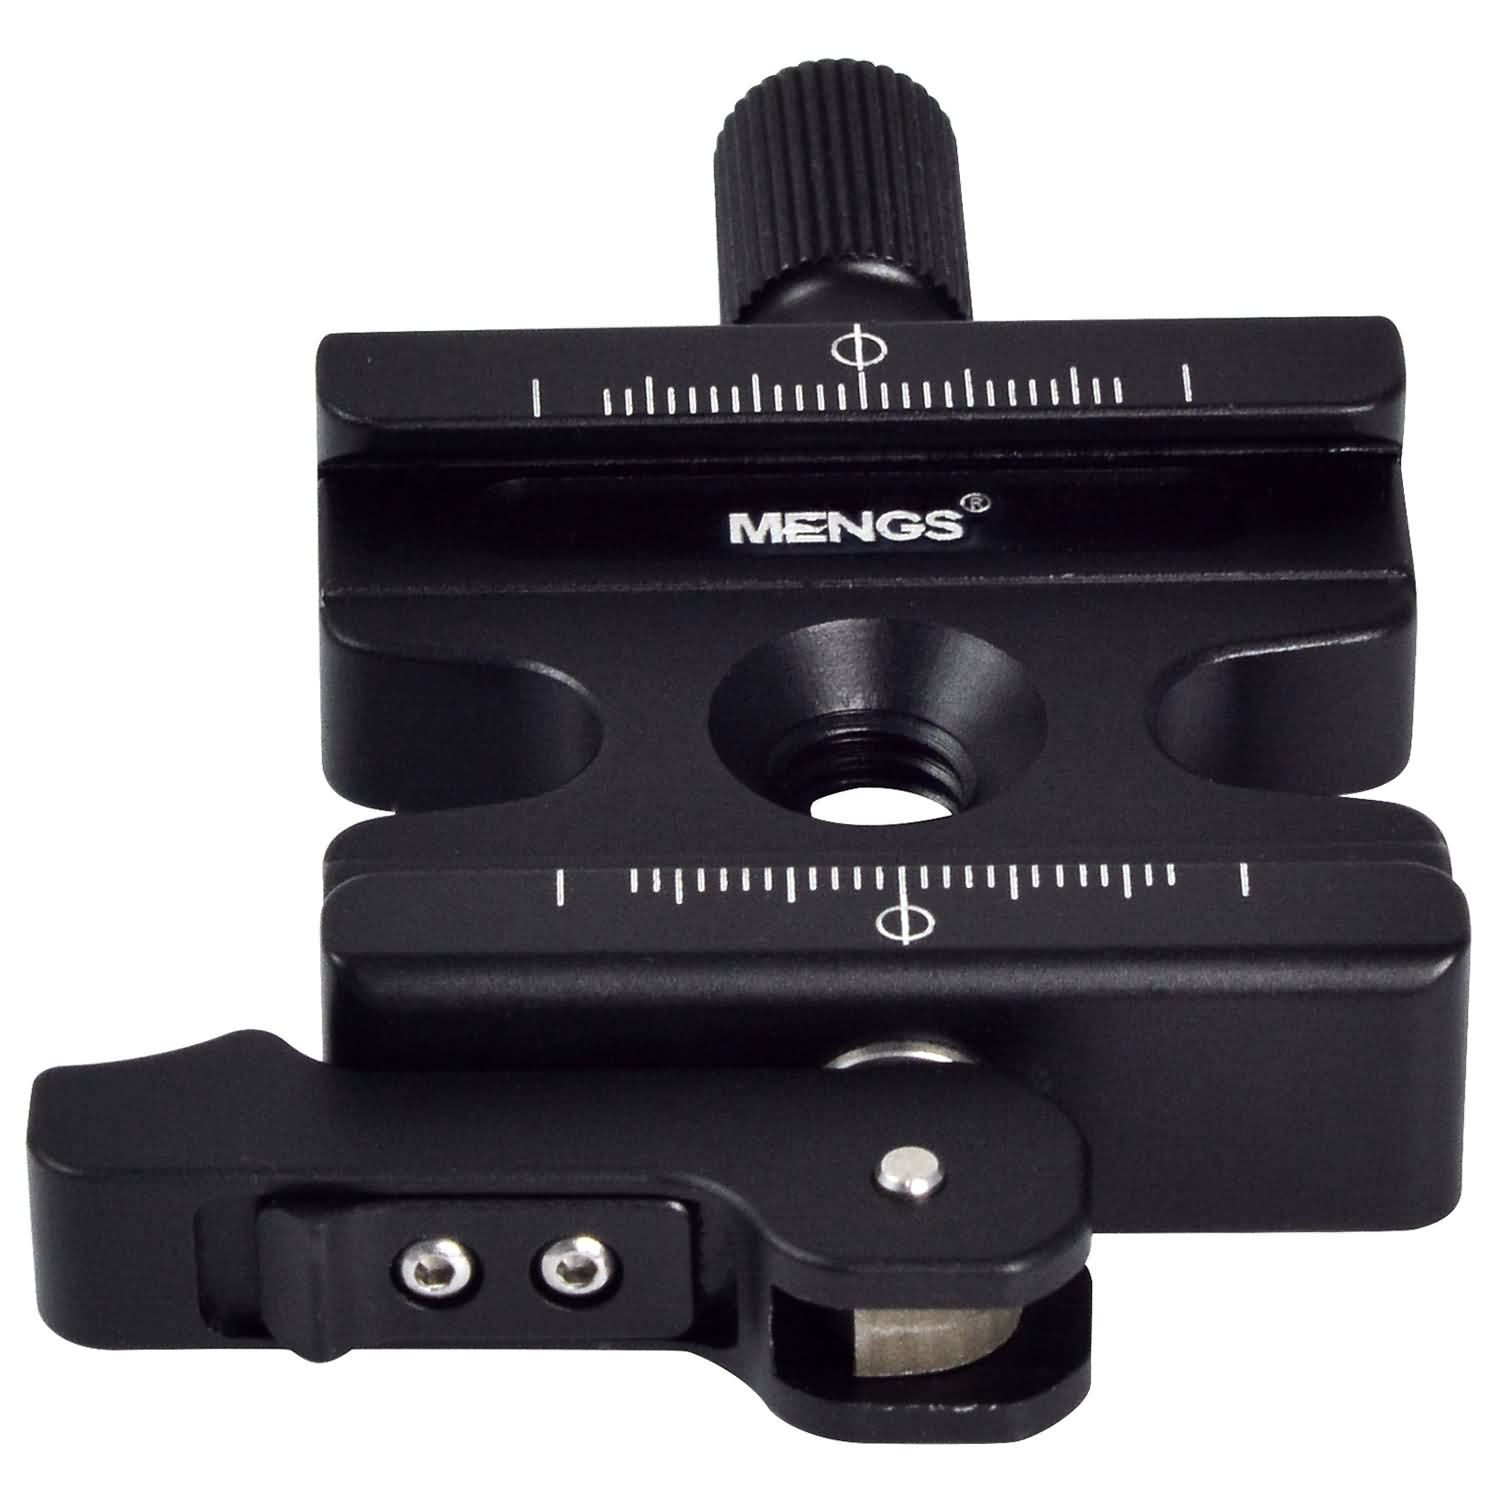 Mengsphoto mengs cl ls camera quick release clamp